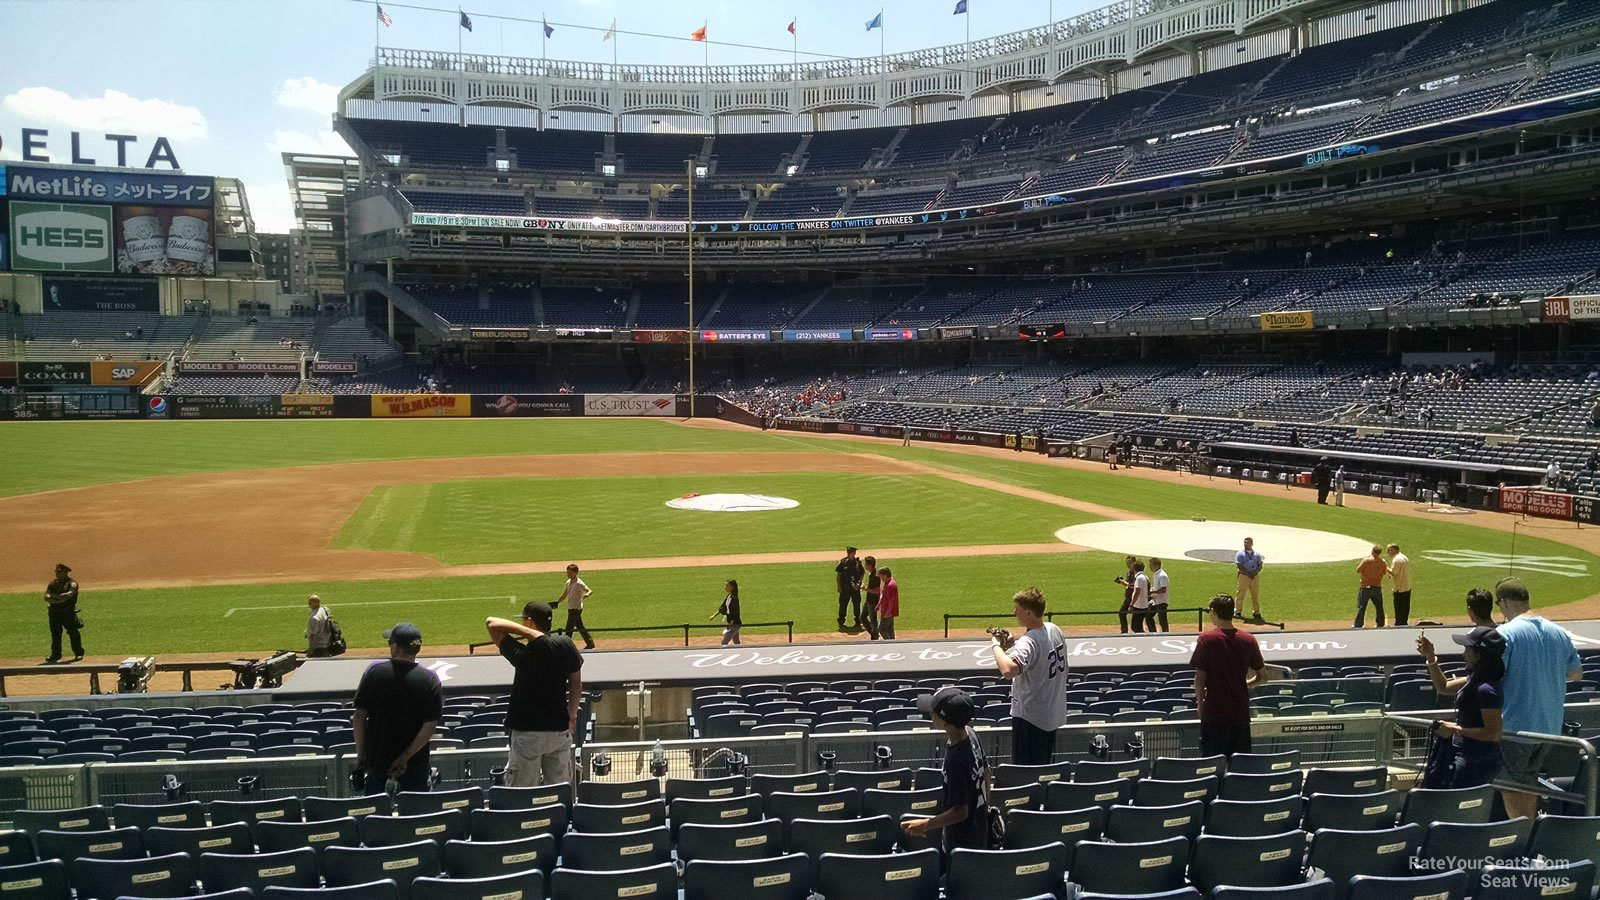 New York Yankees Seat View for Yankee Stadium Section 124, Row 11